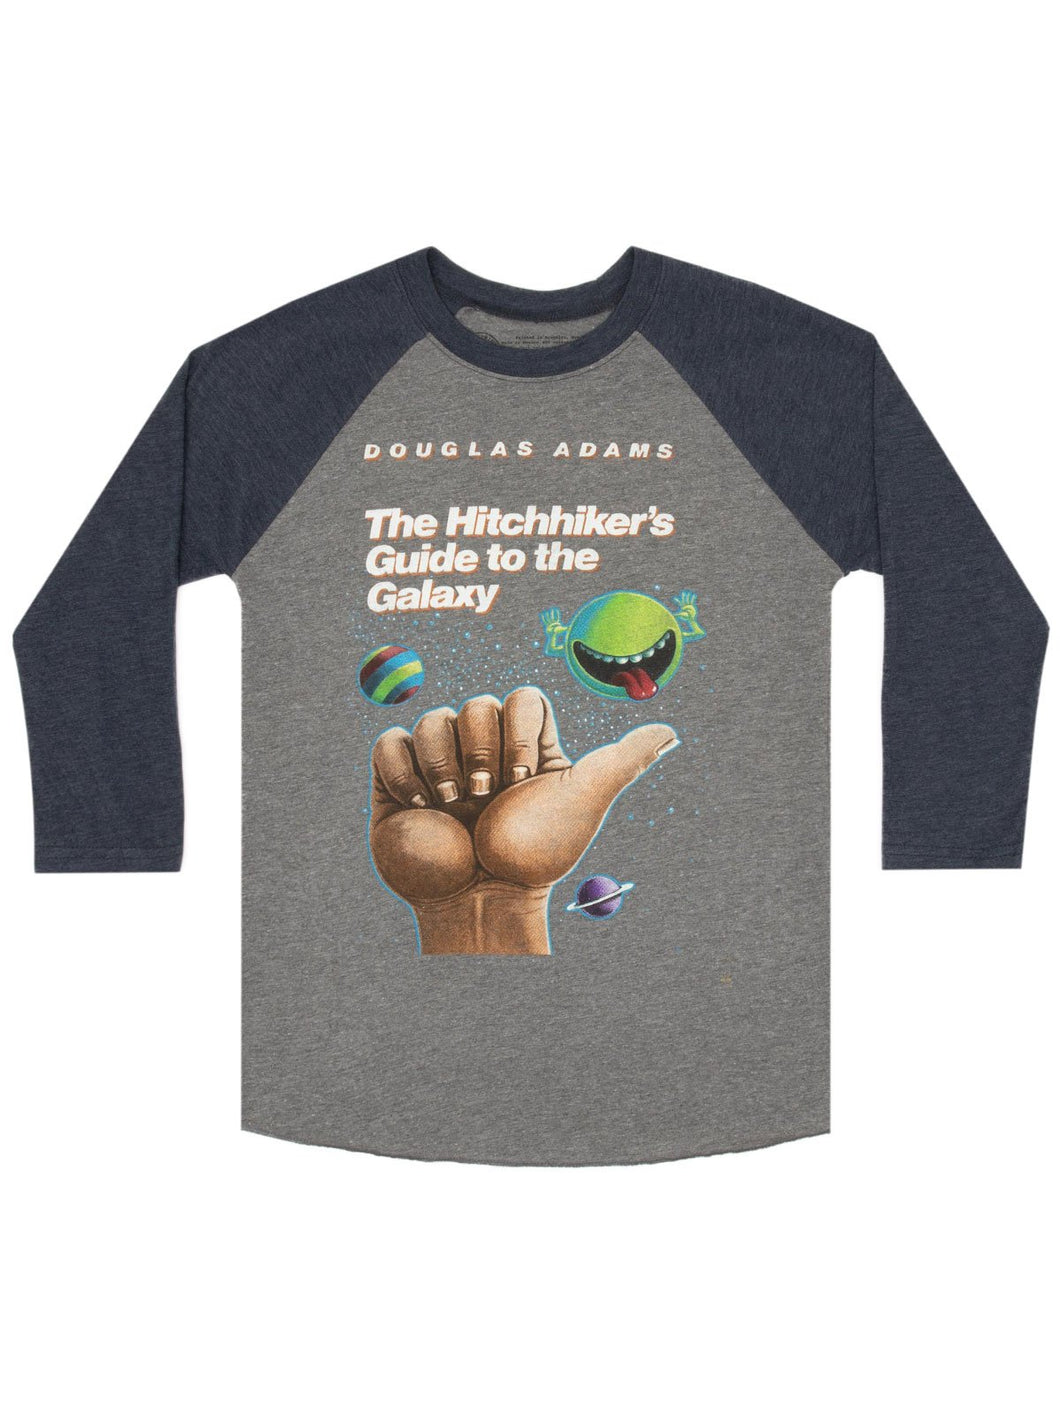 The Hitchhikers Guide to the Galaxy 3/4 Sleeve Raglan Tee (Unisex)